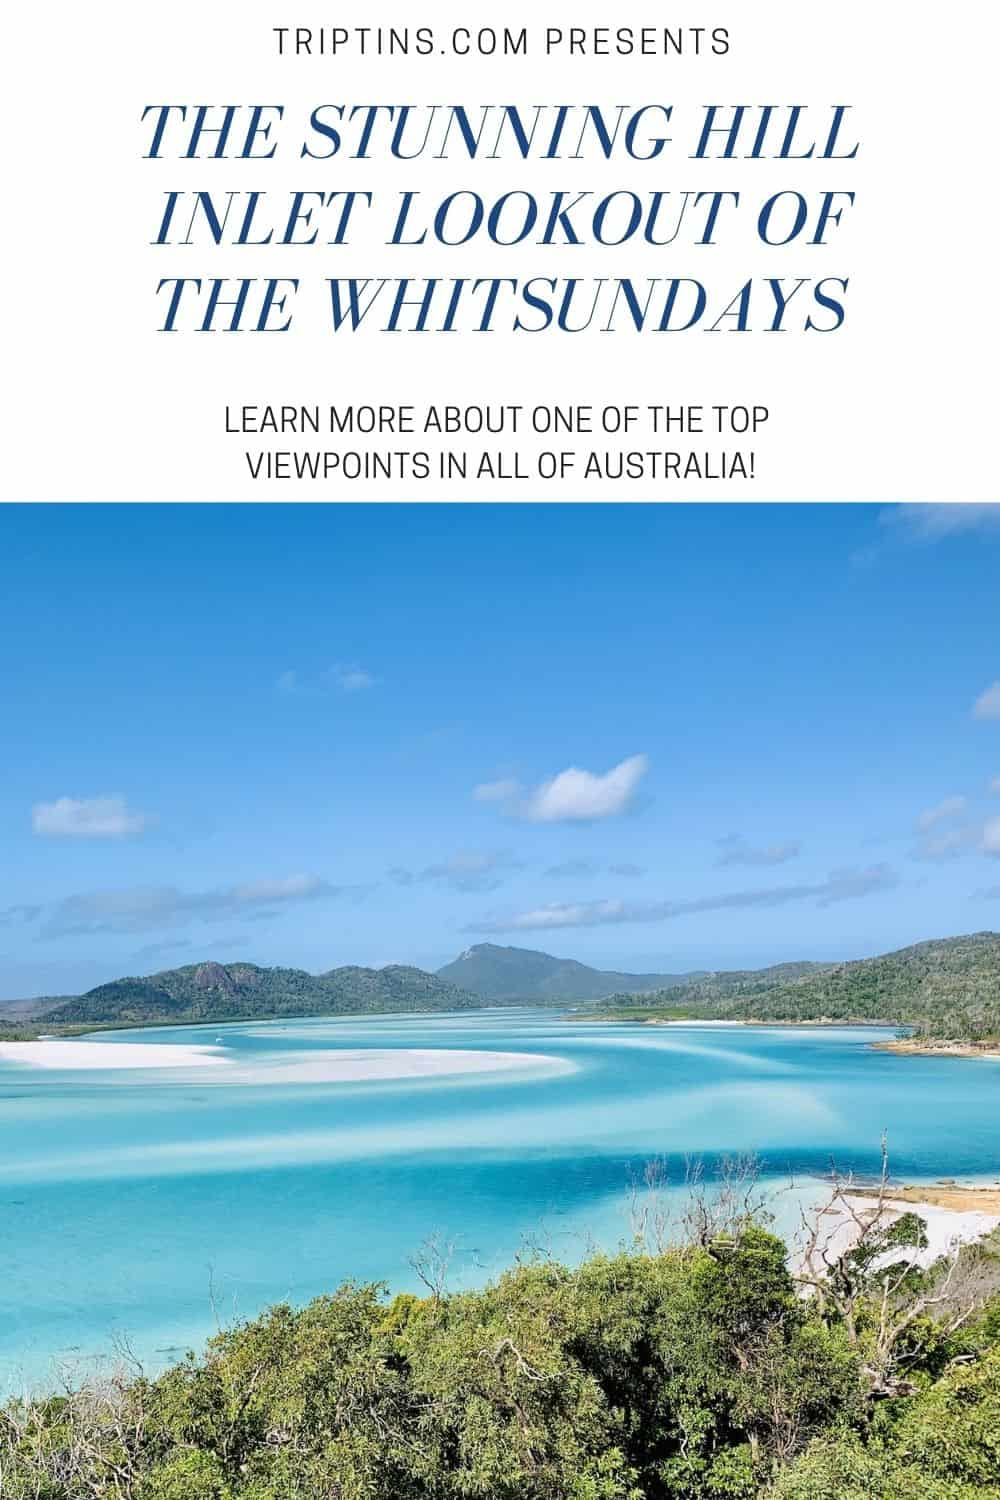 Hill Inlet Lookout Whitsundays Australia